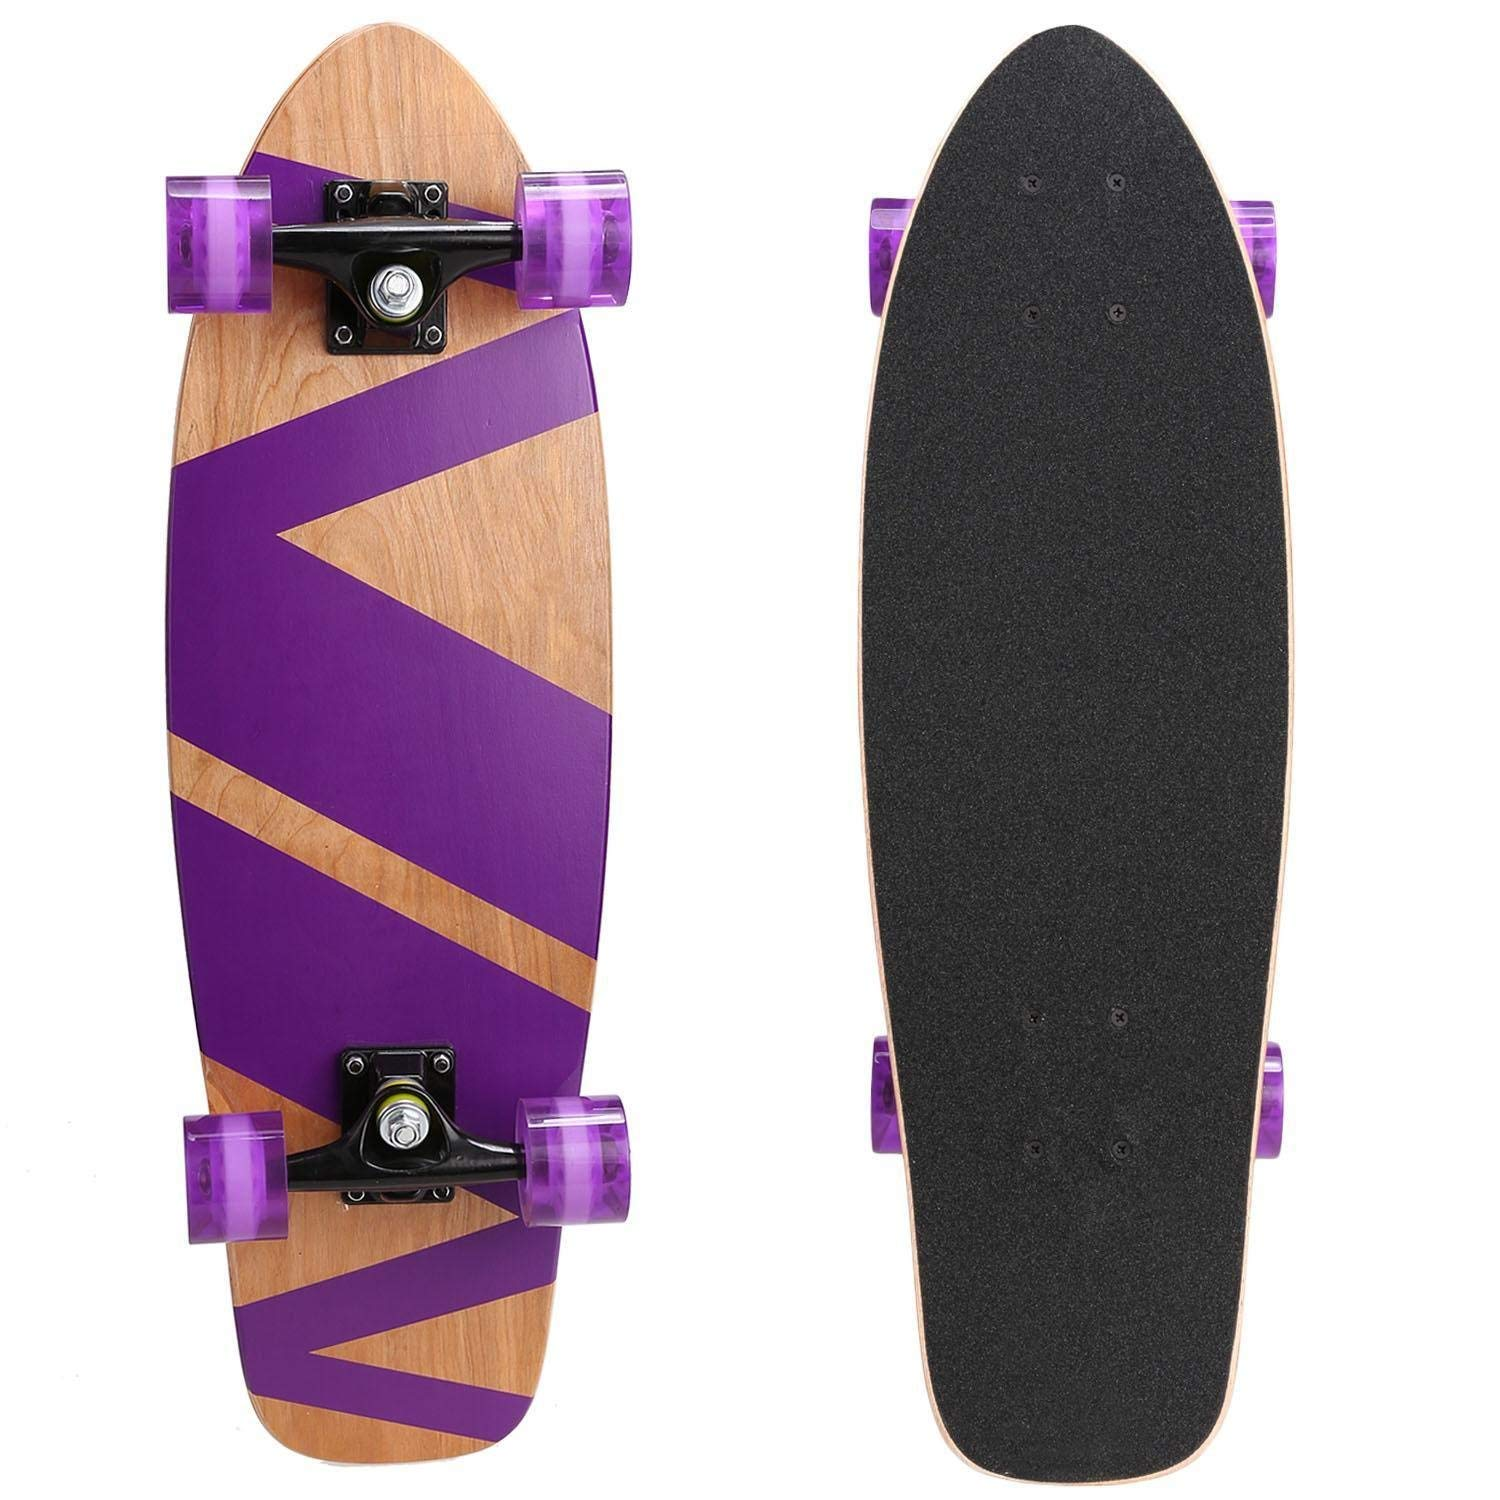 f84ee84257 Get Quotations · 27inch Cruiser Style Skateboard Outdoor Fun Wooden Deck  Skate Board